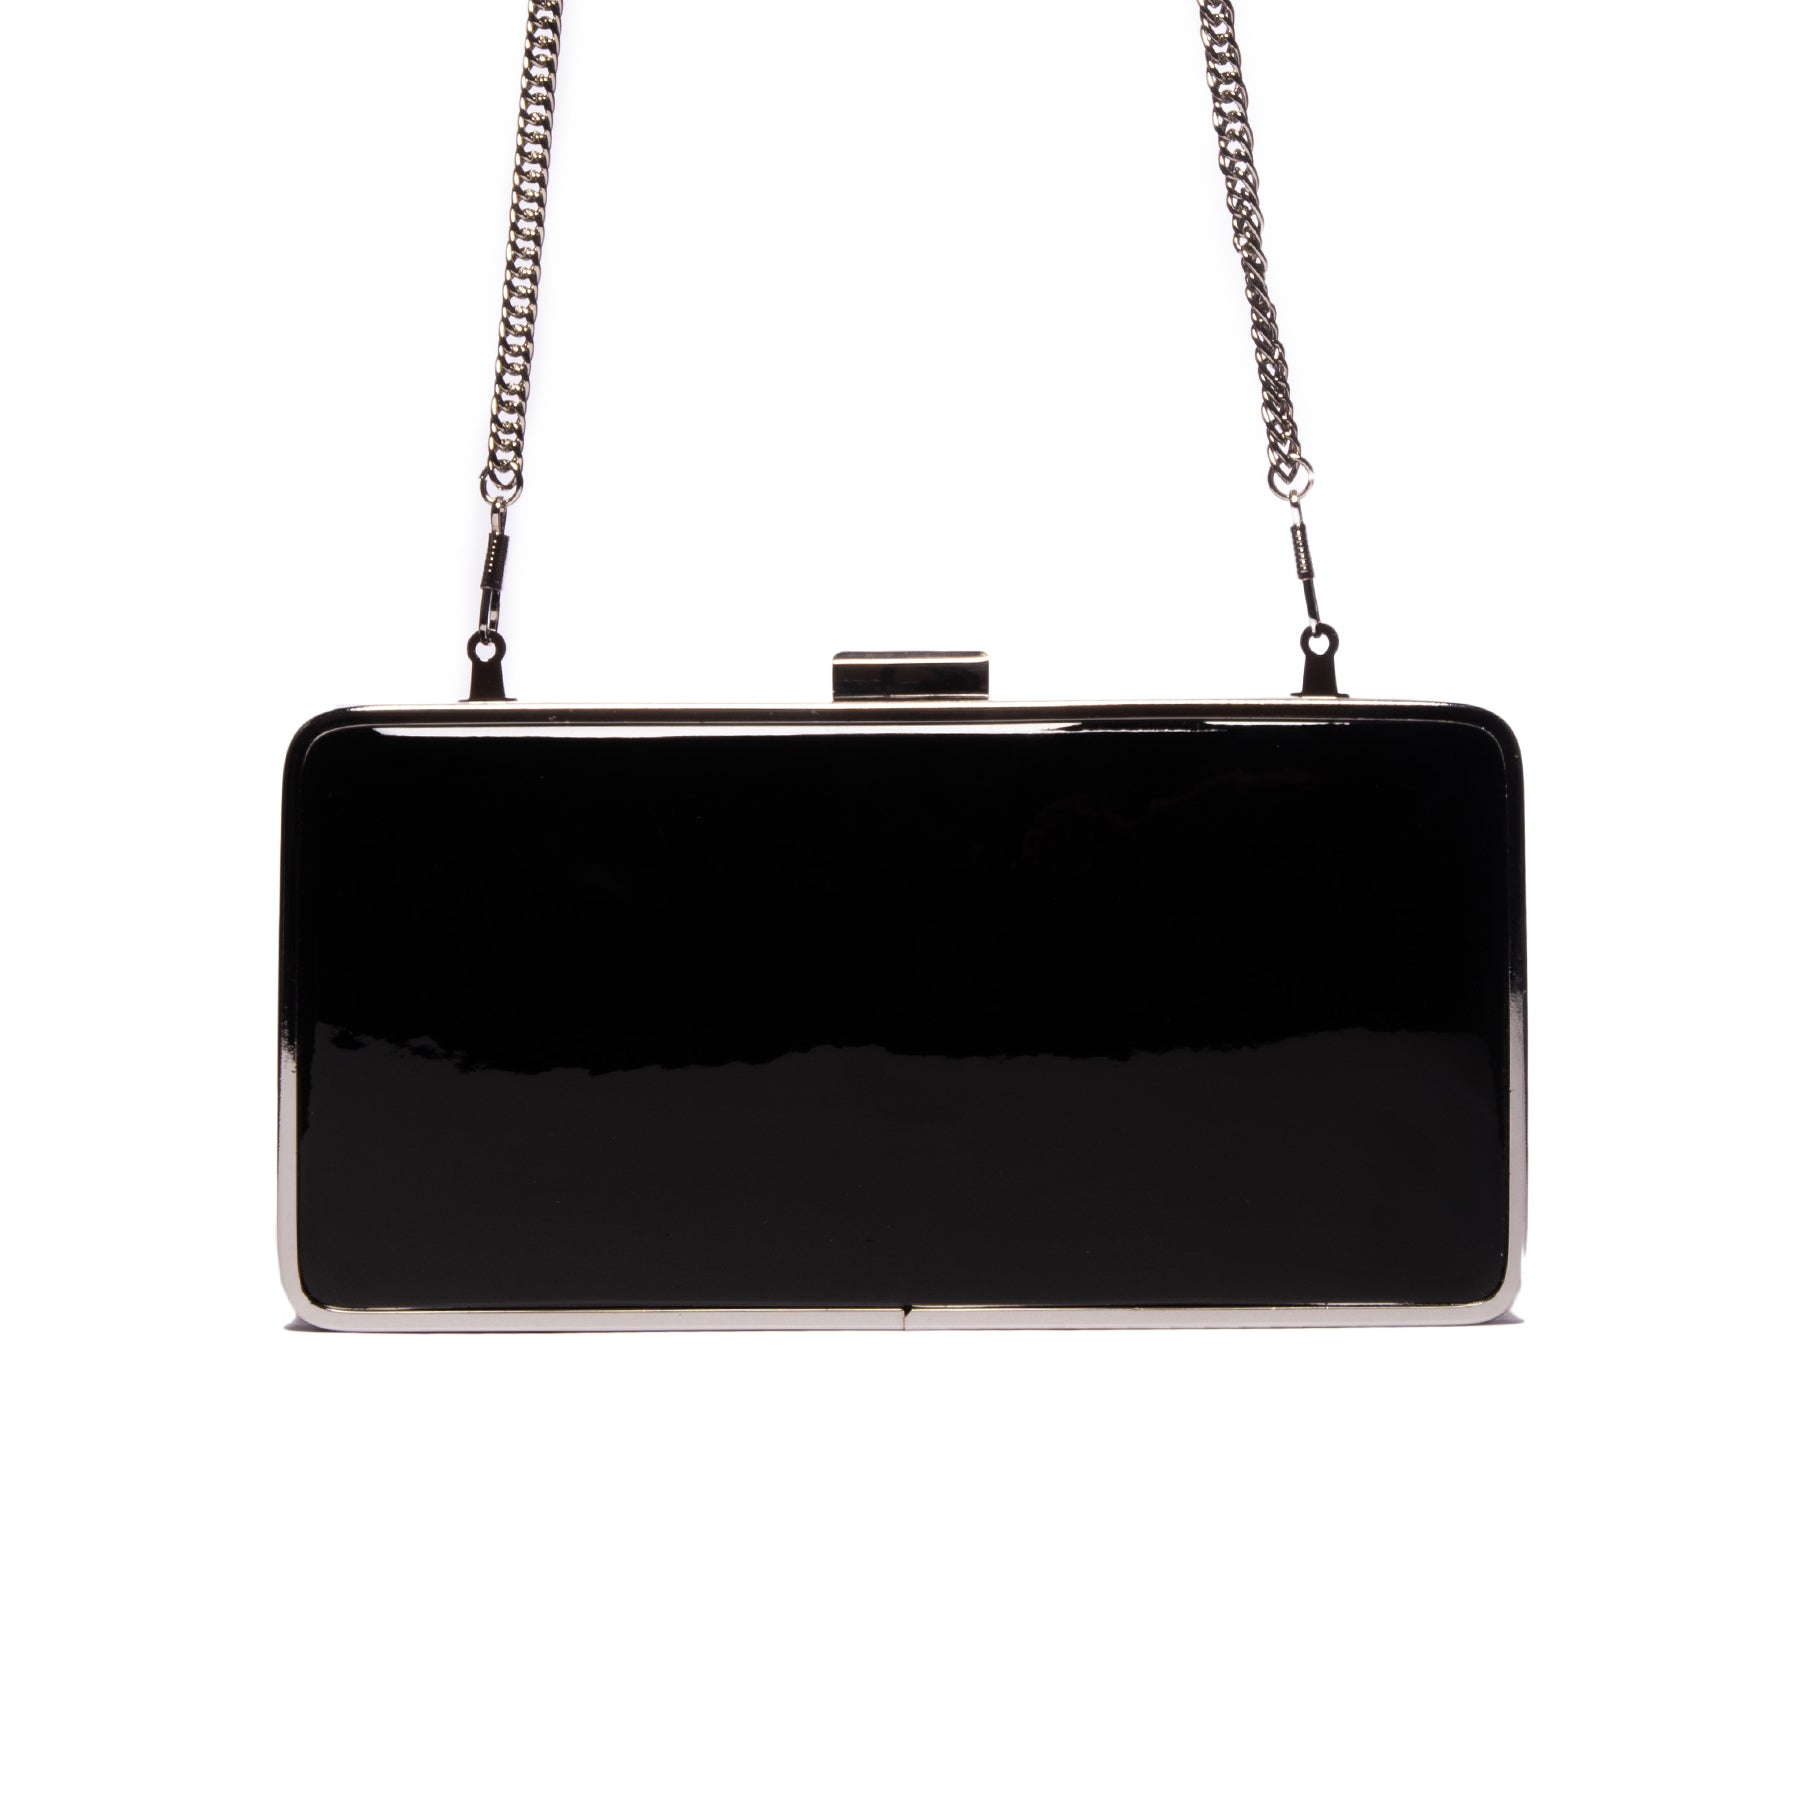 Theodore Black Patent Leather Clutch